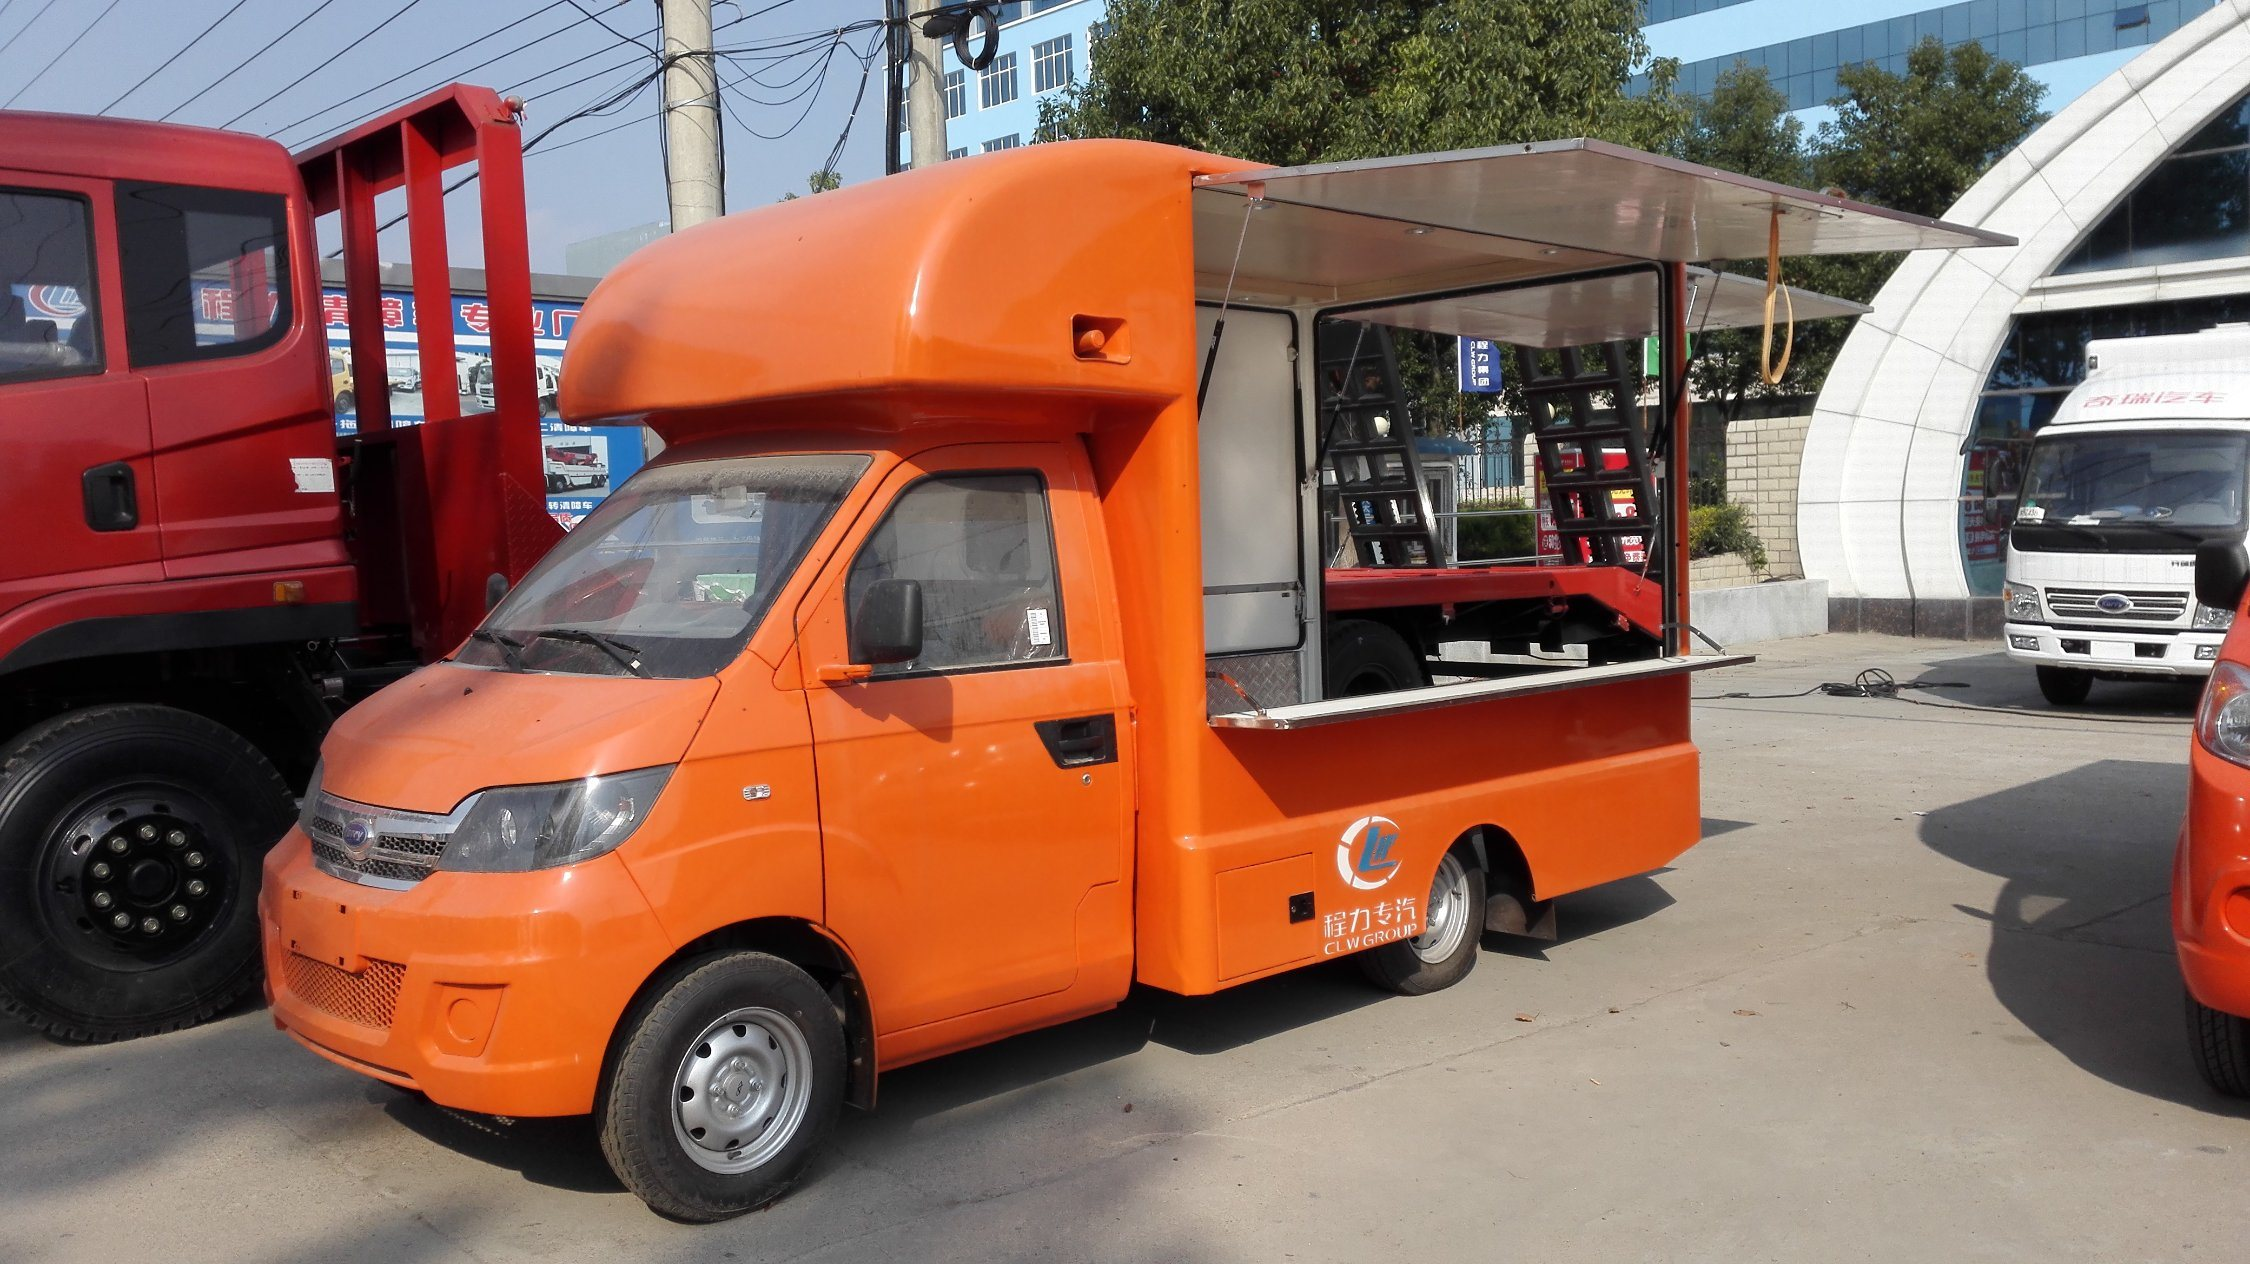 China Outdoor Customized Fast Convenient Ice Cream Coffer Mobile Street Cold  Drinks Easy Operation BBQ Hotdog Shop Mobile Trailer Food Truck - China  Food Carting Truck, Fabricant Food Truck